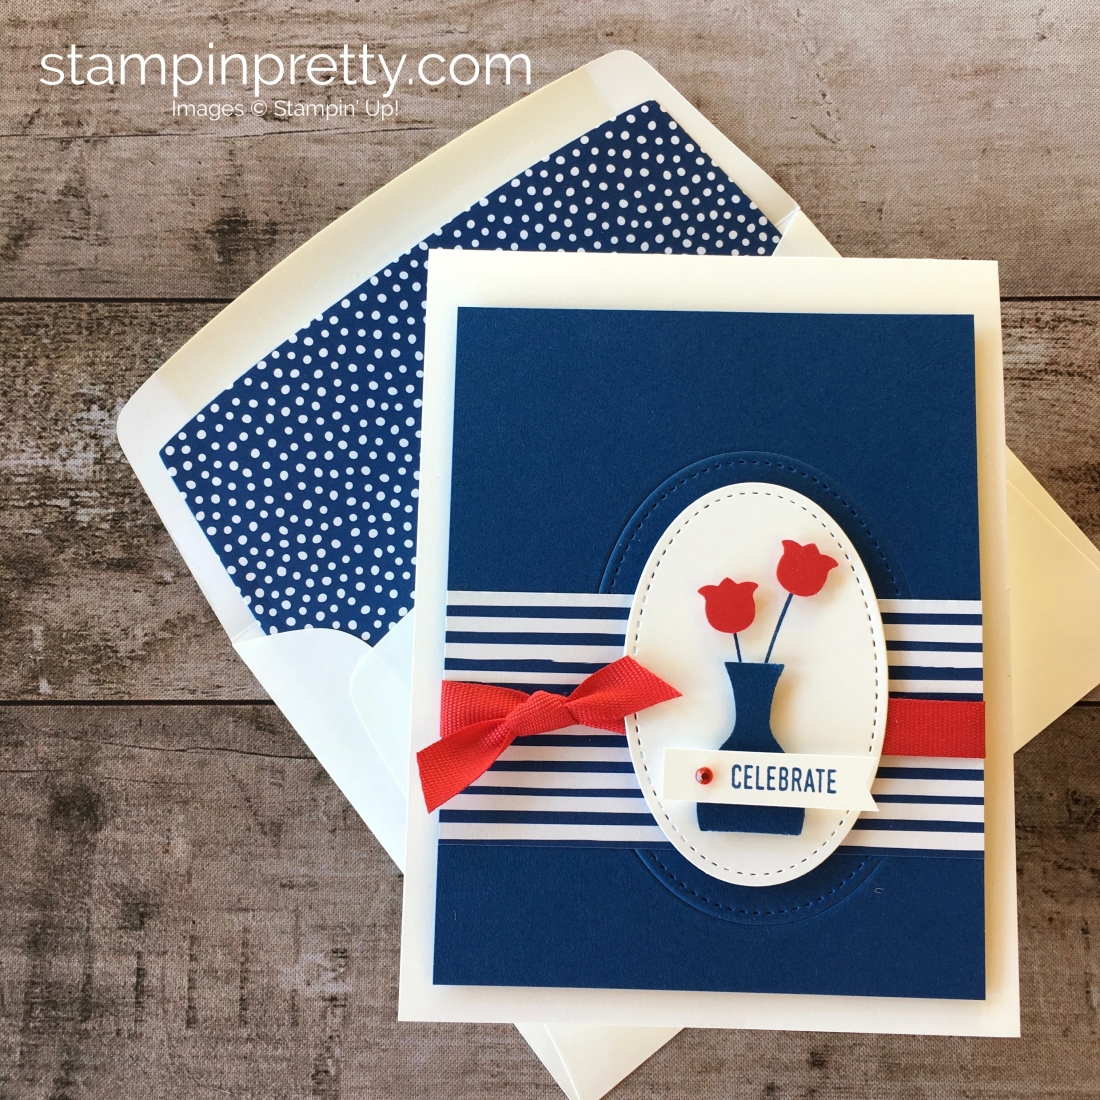 Create a simple fourth of july patriotic card using Stampin Up Varied Vases - Mary Fish